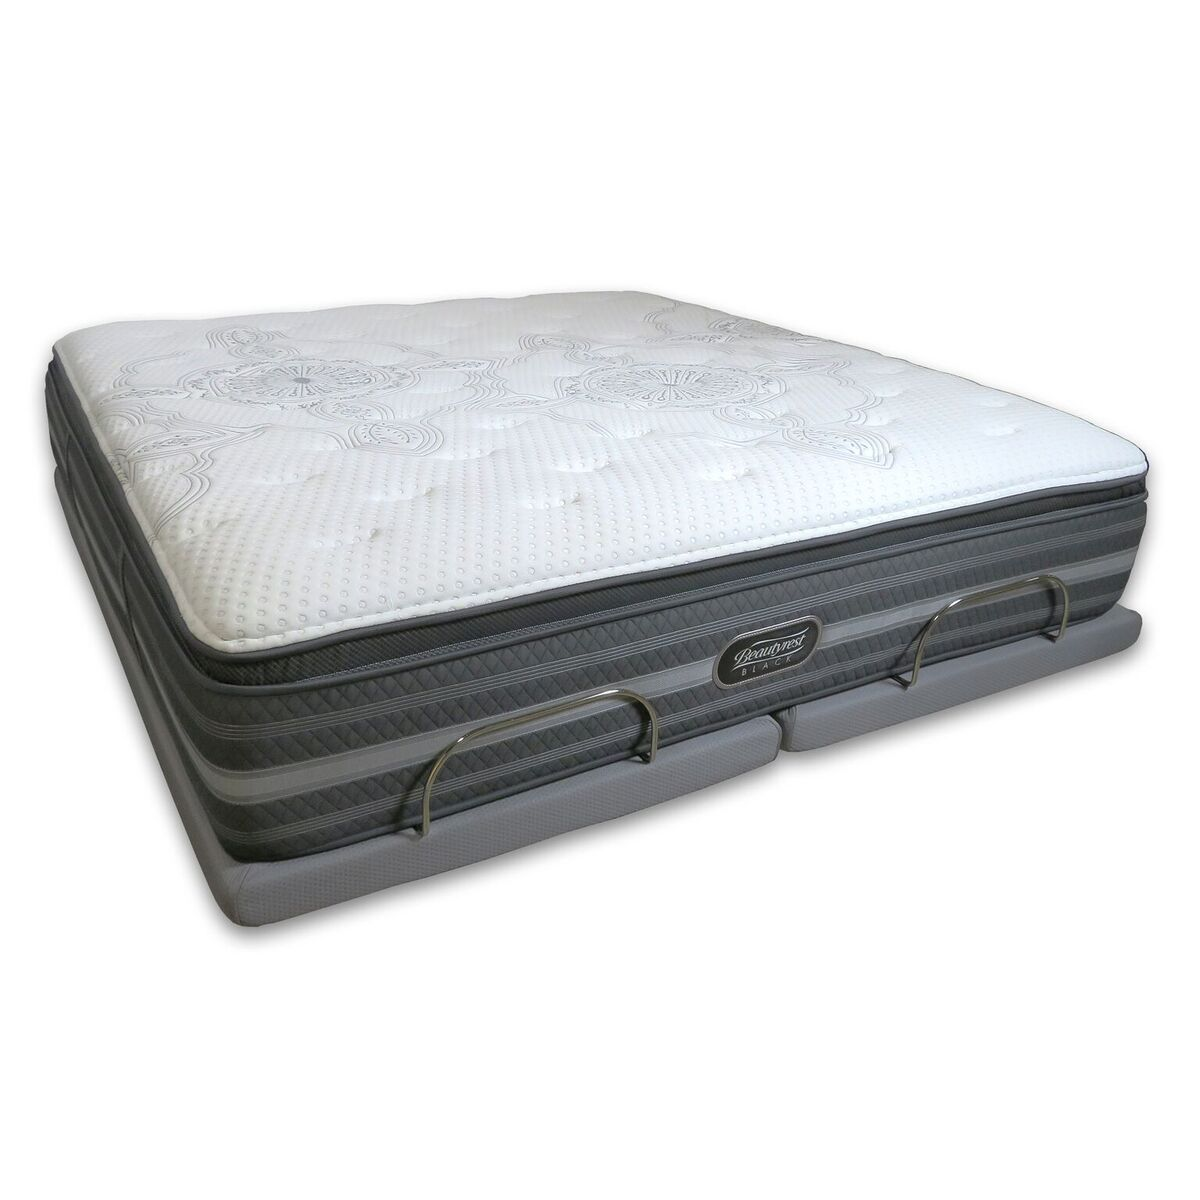 Overstock Simmons Beautyrest Black Hybrid Plus Wellington